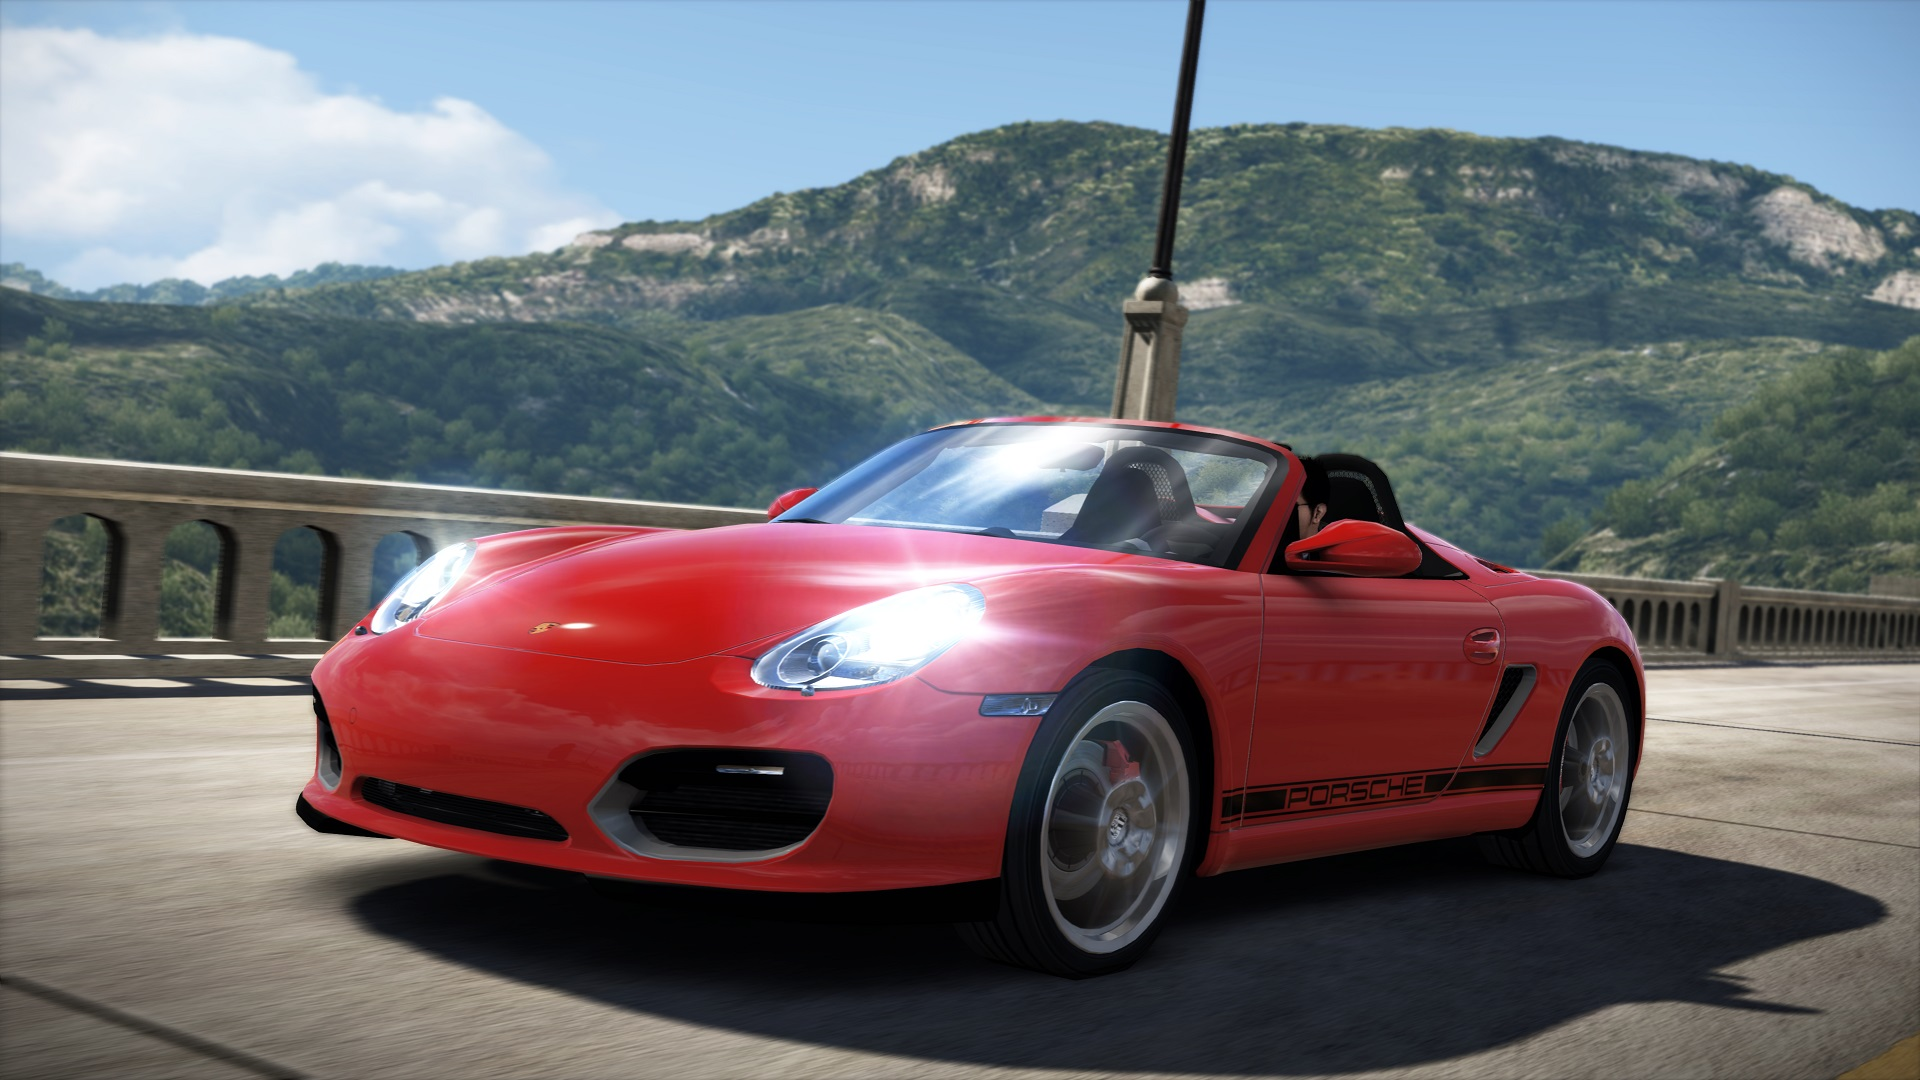 Central Valley Dodge >> Porsche Boxster Spyder | Need for Speed Wiki | FANDOM powered by Wikia